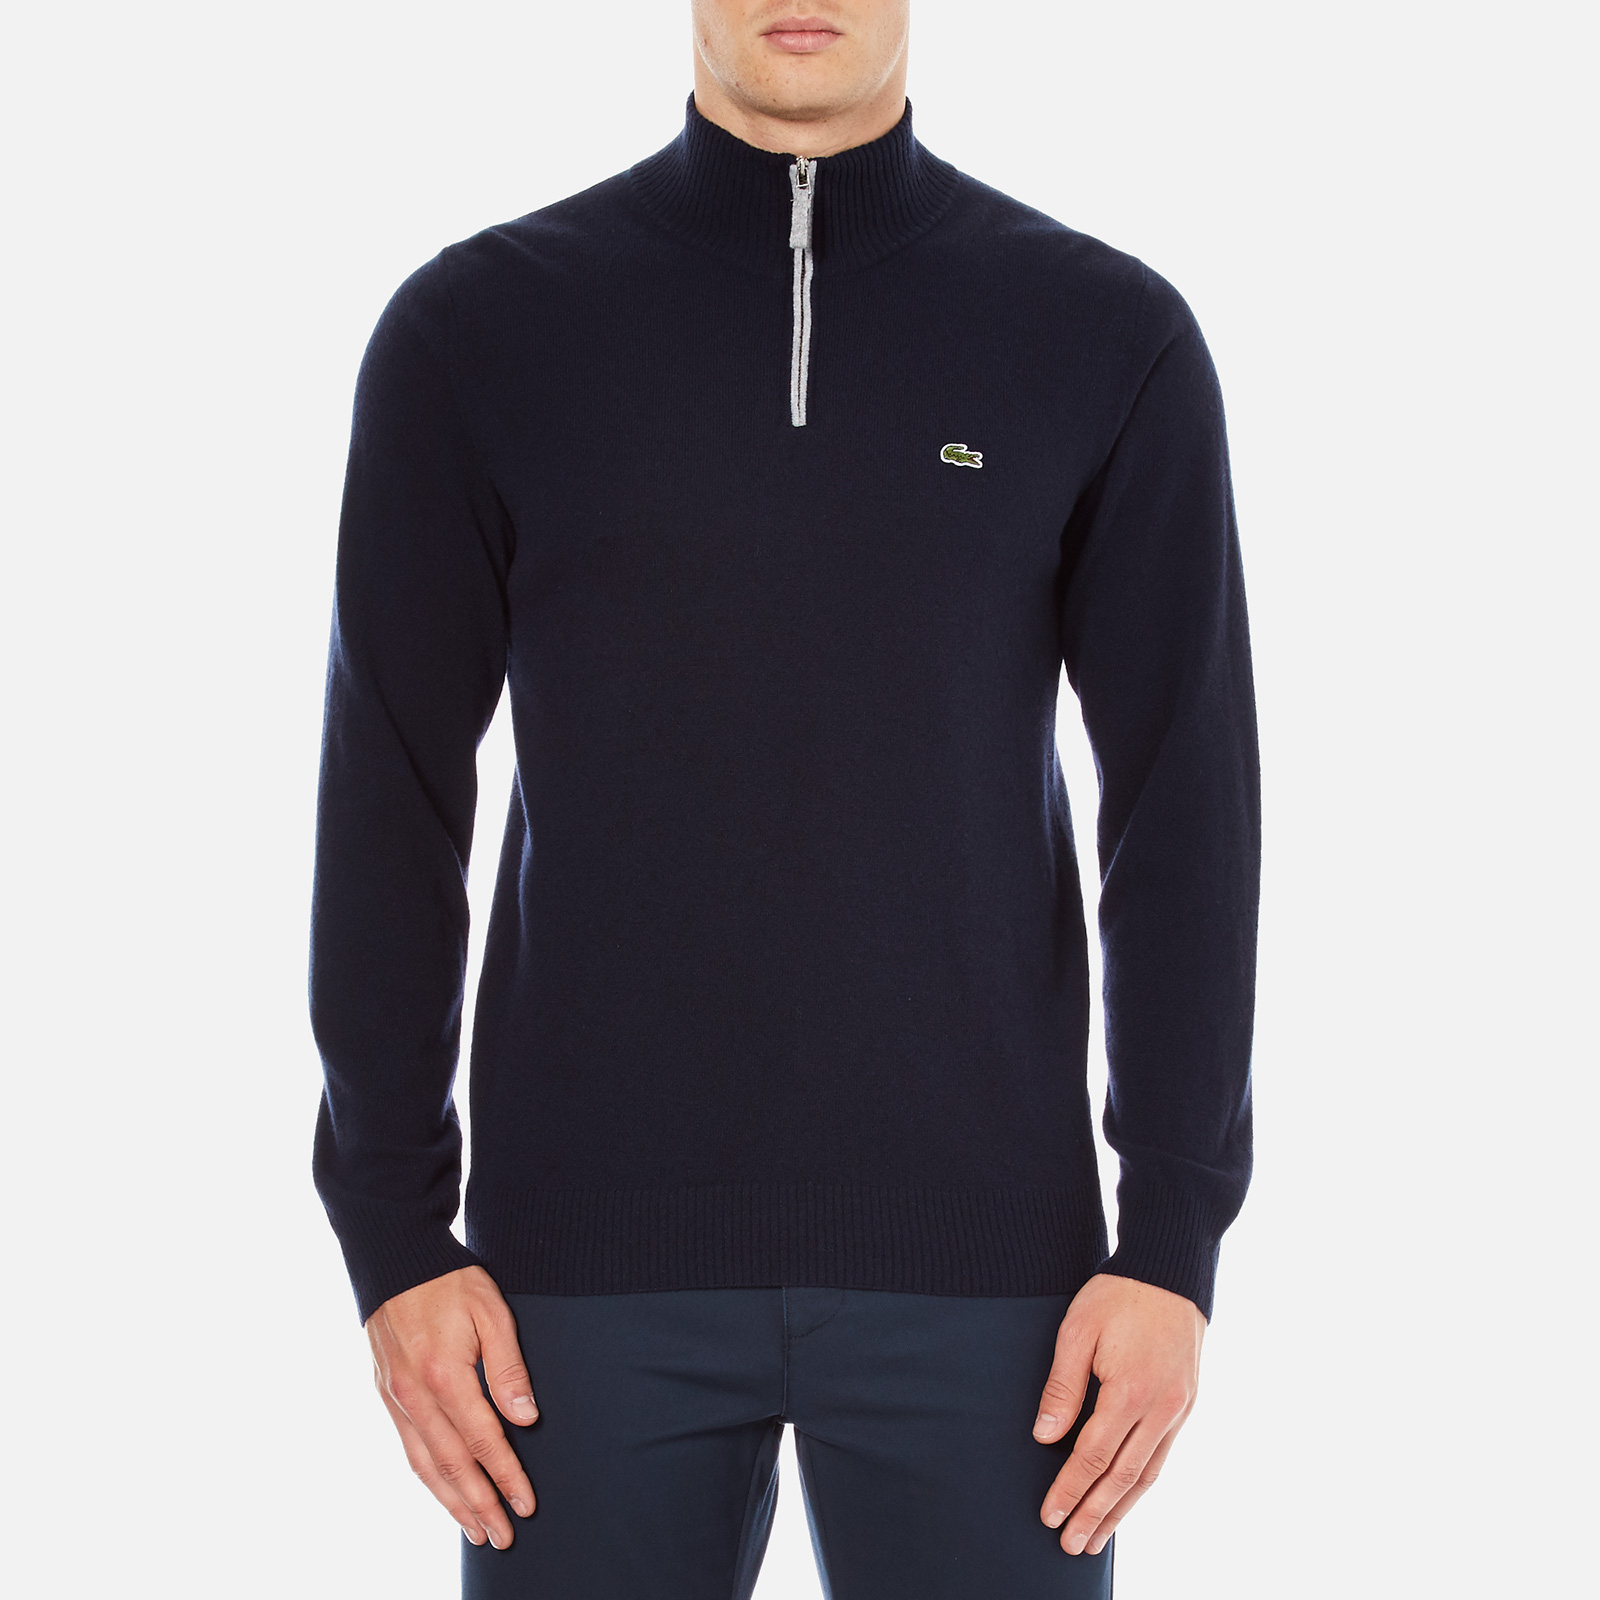 a36cc310c8dc Lacoste Men s Half Zip Funnel Neck Sweatshirt - Navy Blue Silver Chine -  Free UK Delivery over £50